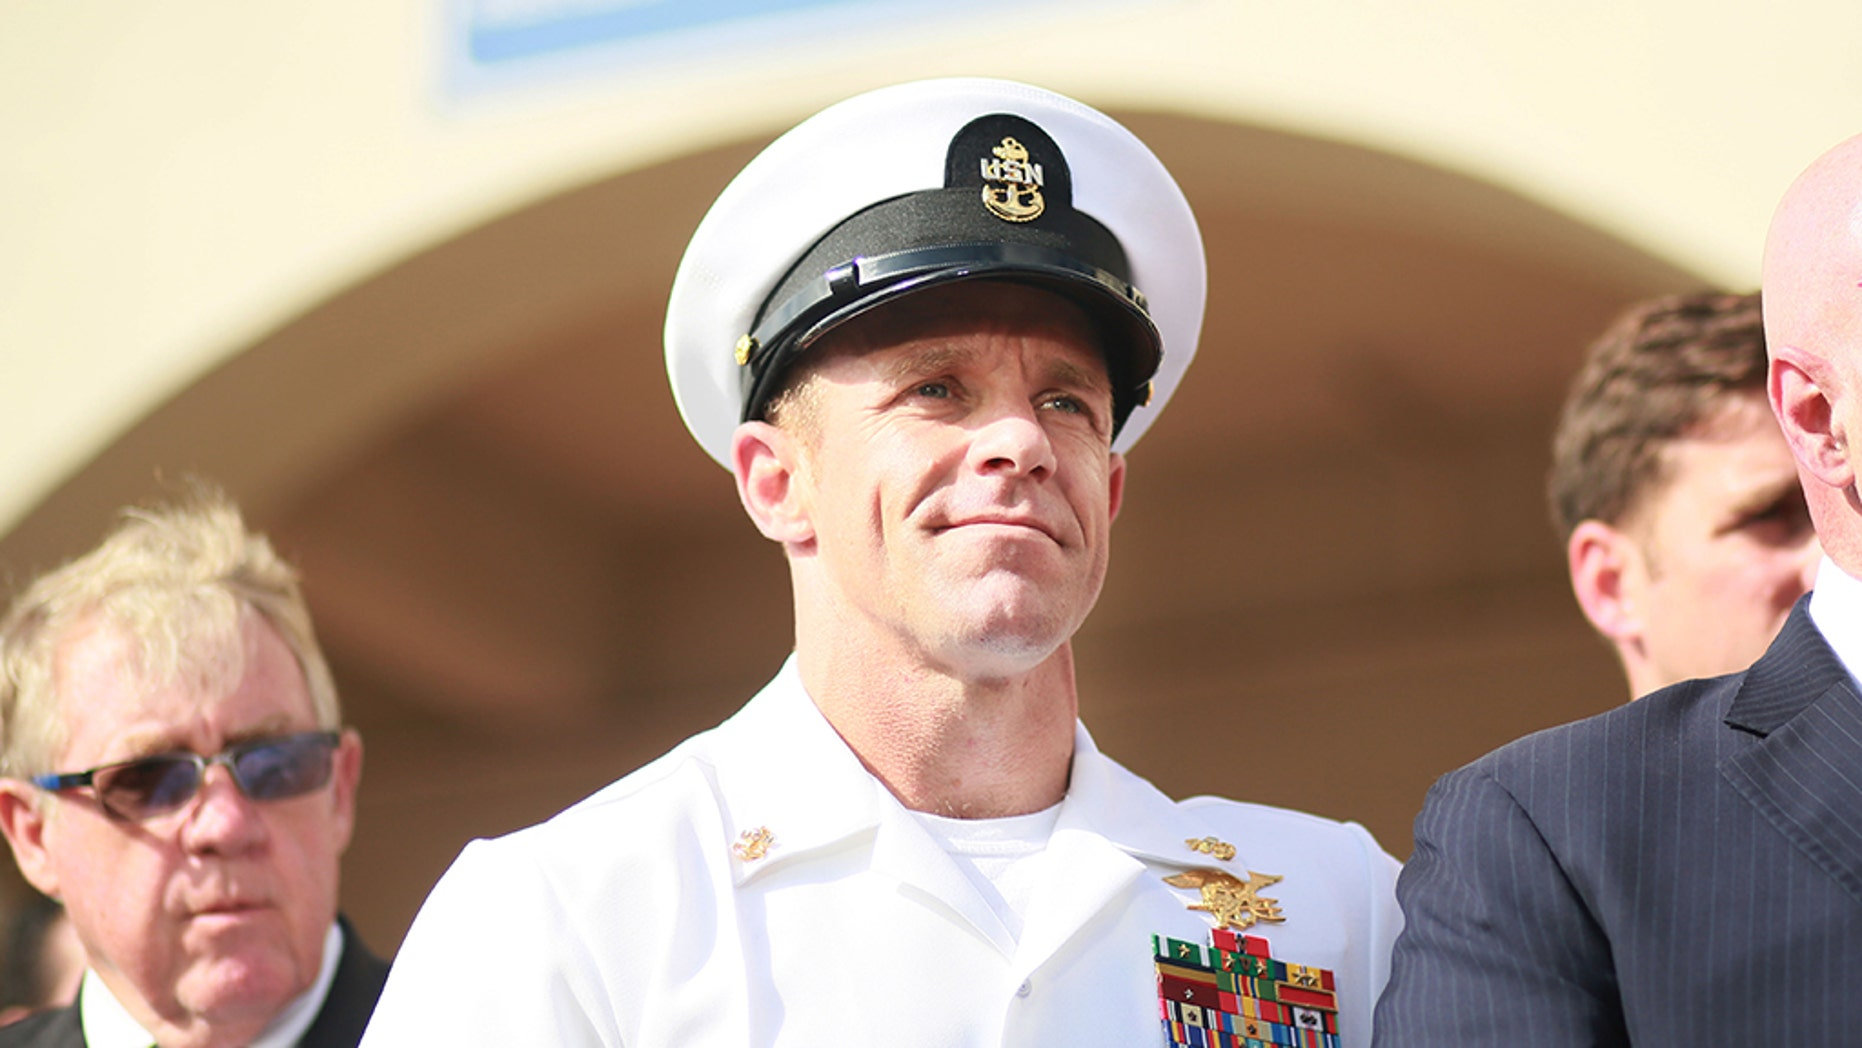 Navy Special Operations Chief Edward Gallagher celebrates after being acquitted of premeditated murder at Naval Base San Diego, Calif., on July 2, 2019. (Photo by Sandy Huffaker/Getty Images)